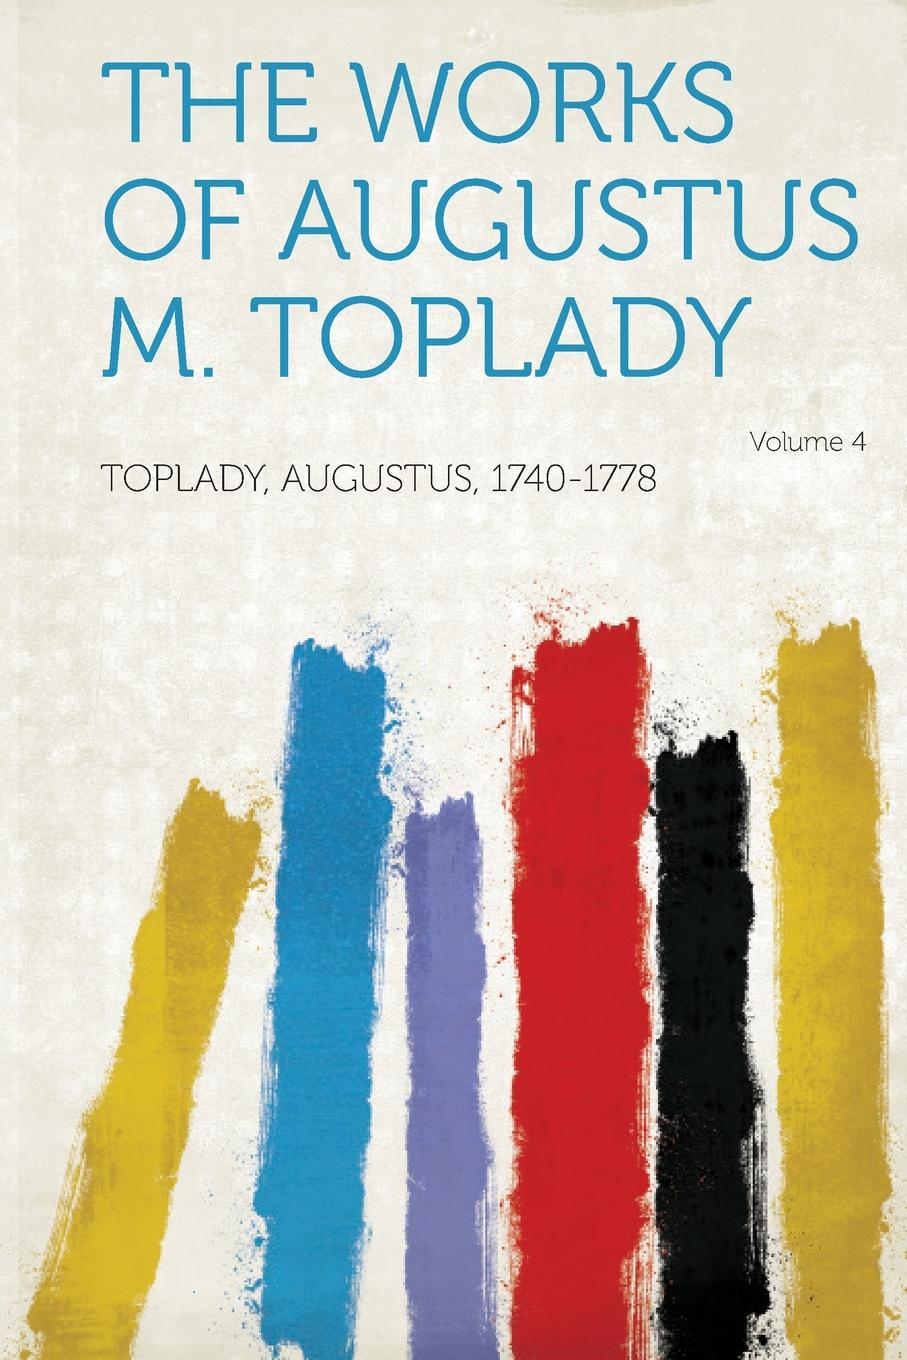 Toplady Augustus 1740-1778 The Works of Augustus M. Toplady Volume 4